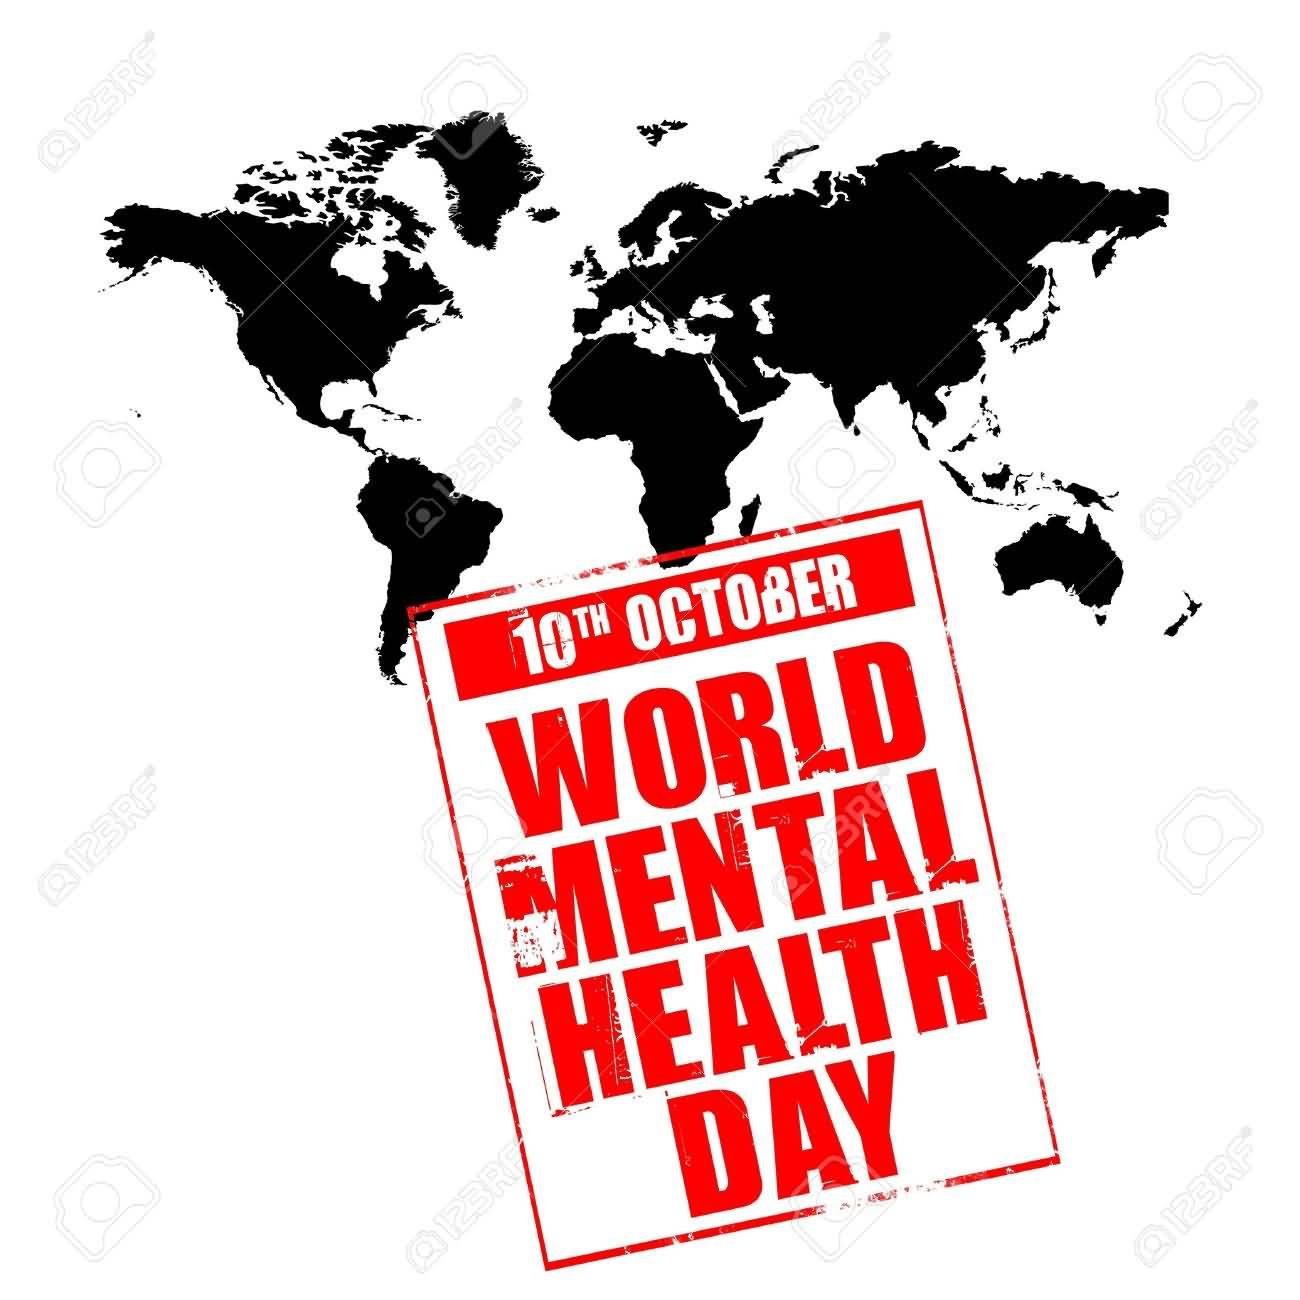 world mental health day - photo #27